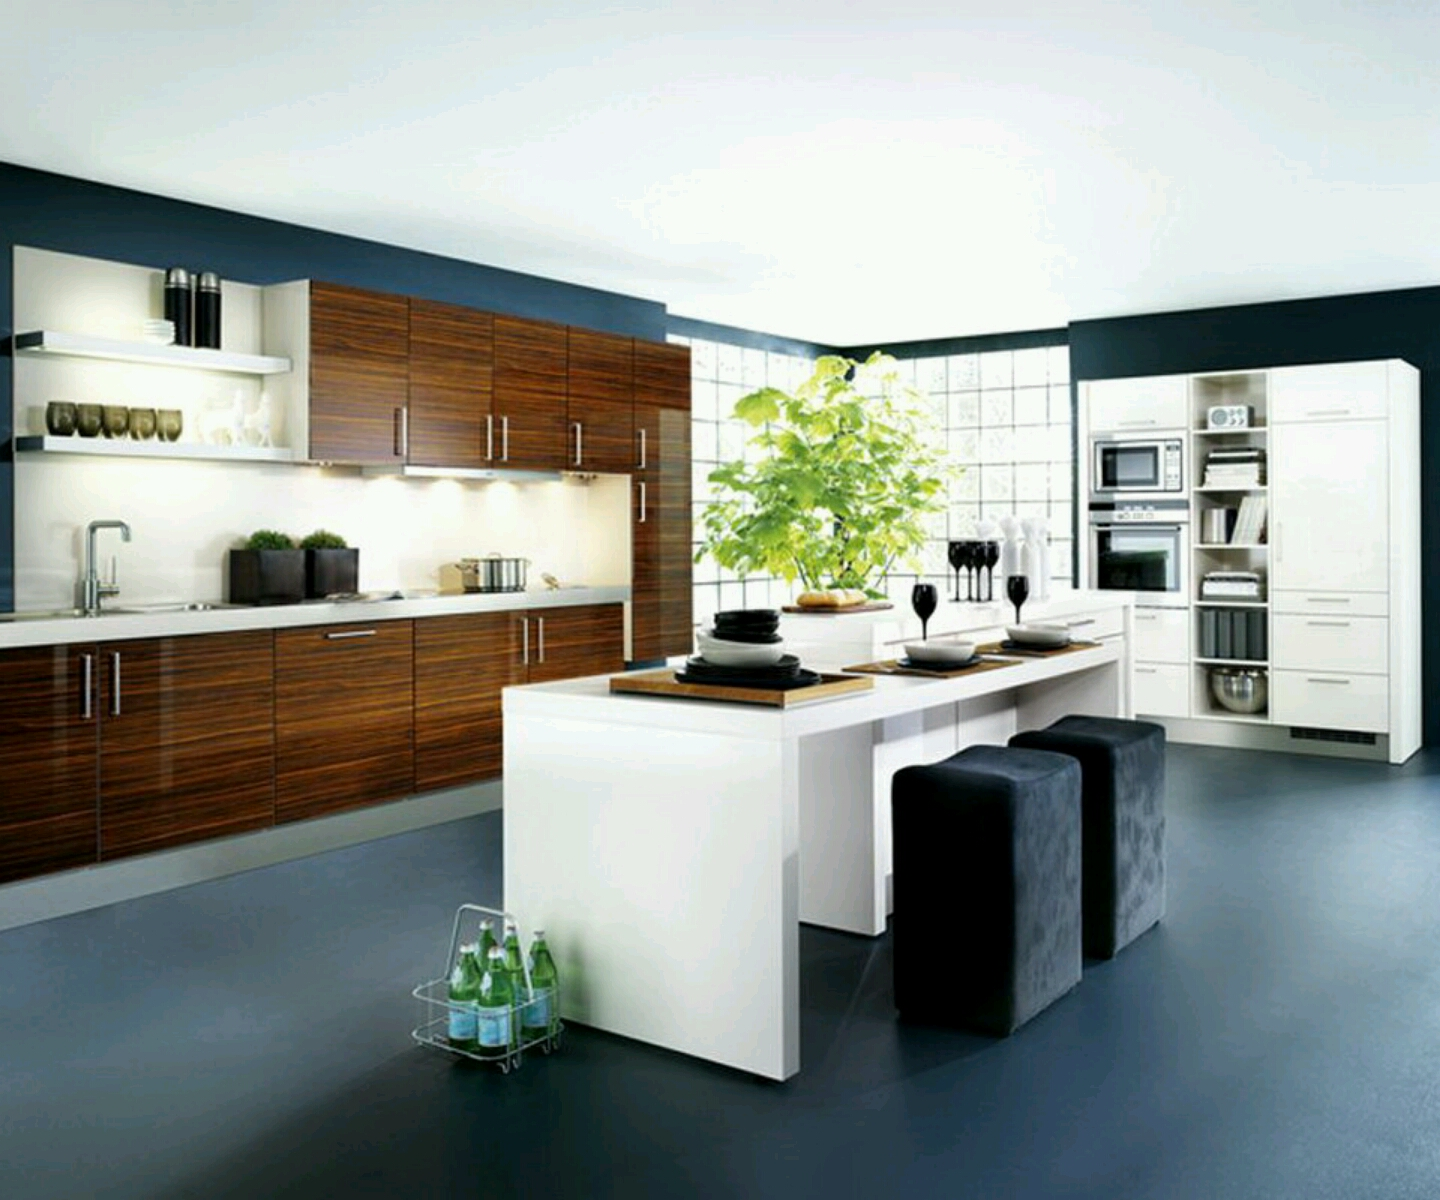 New home designs latest kitchen cabinets designs modern for House kitchen design